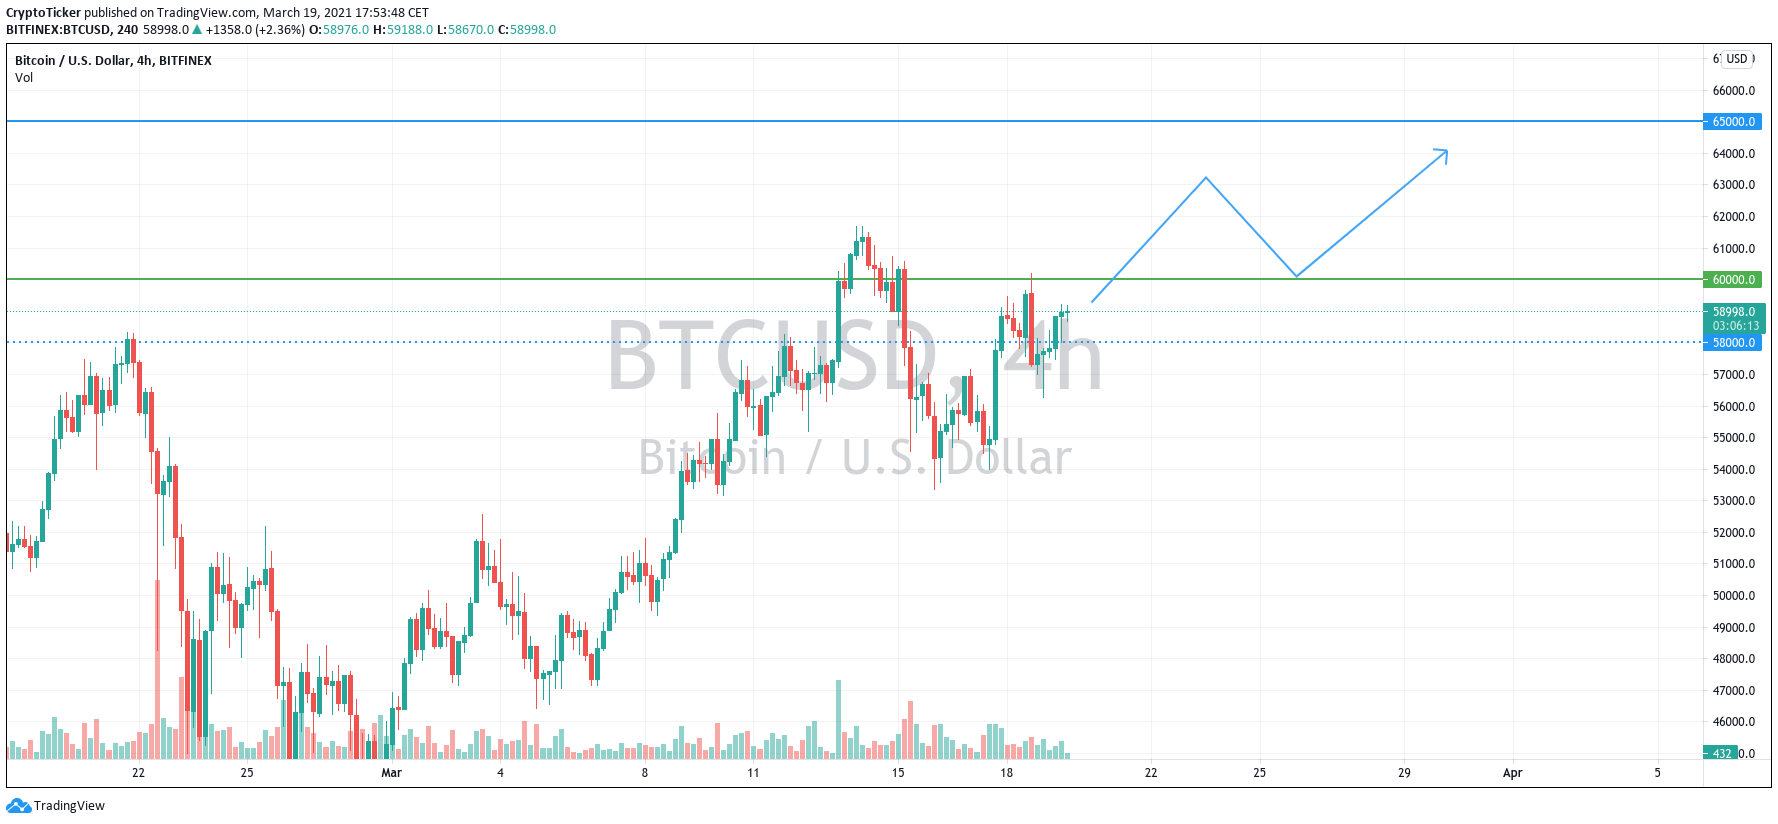 BTC/USD 4-hour chart showing BTC's potential scenario of higher prices